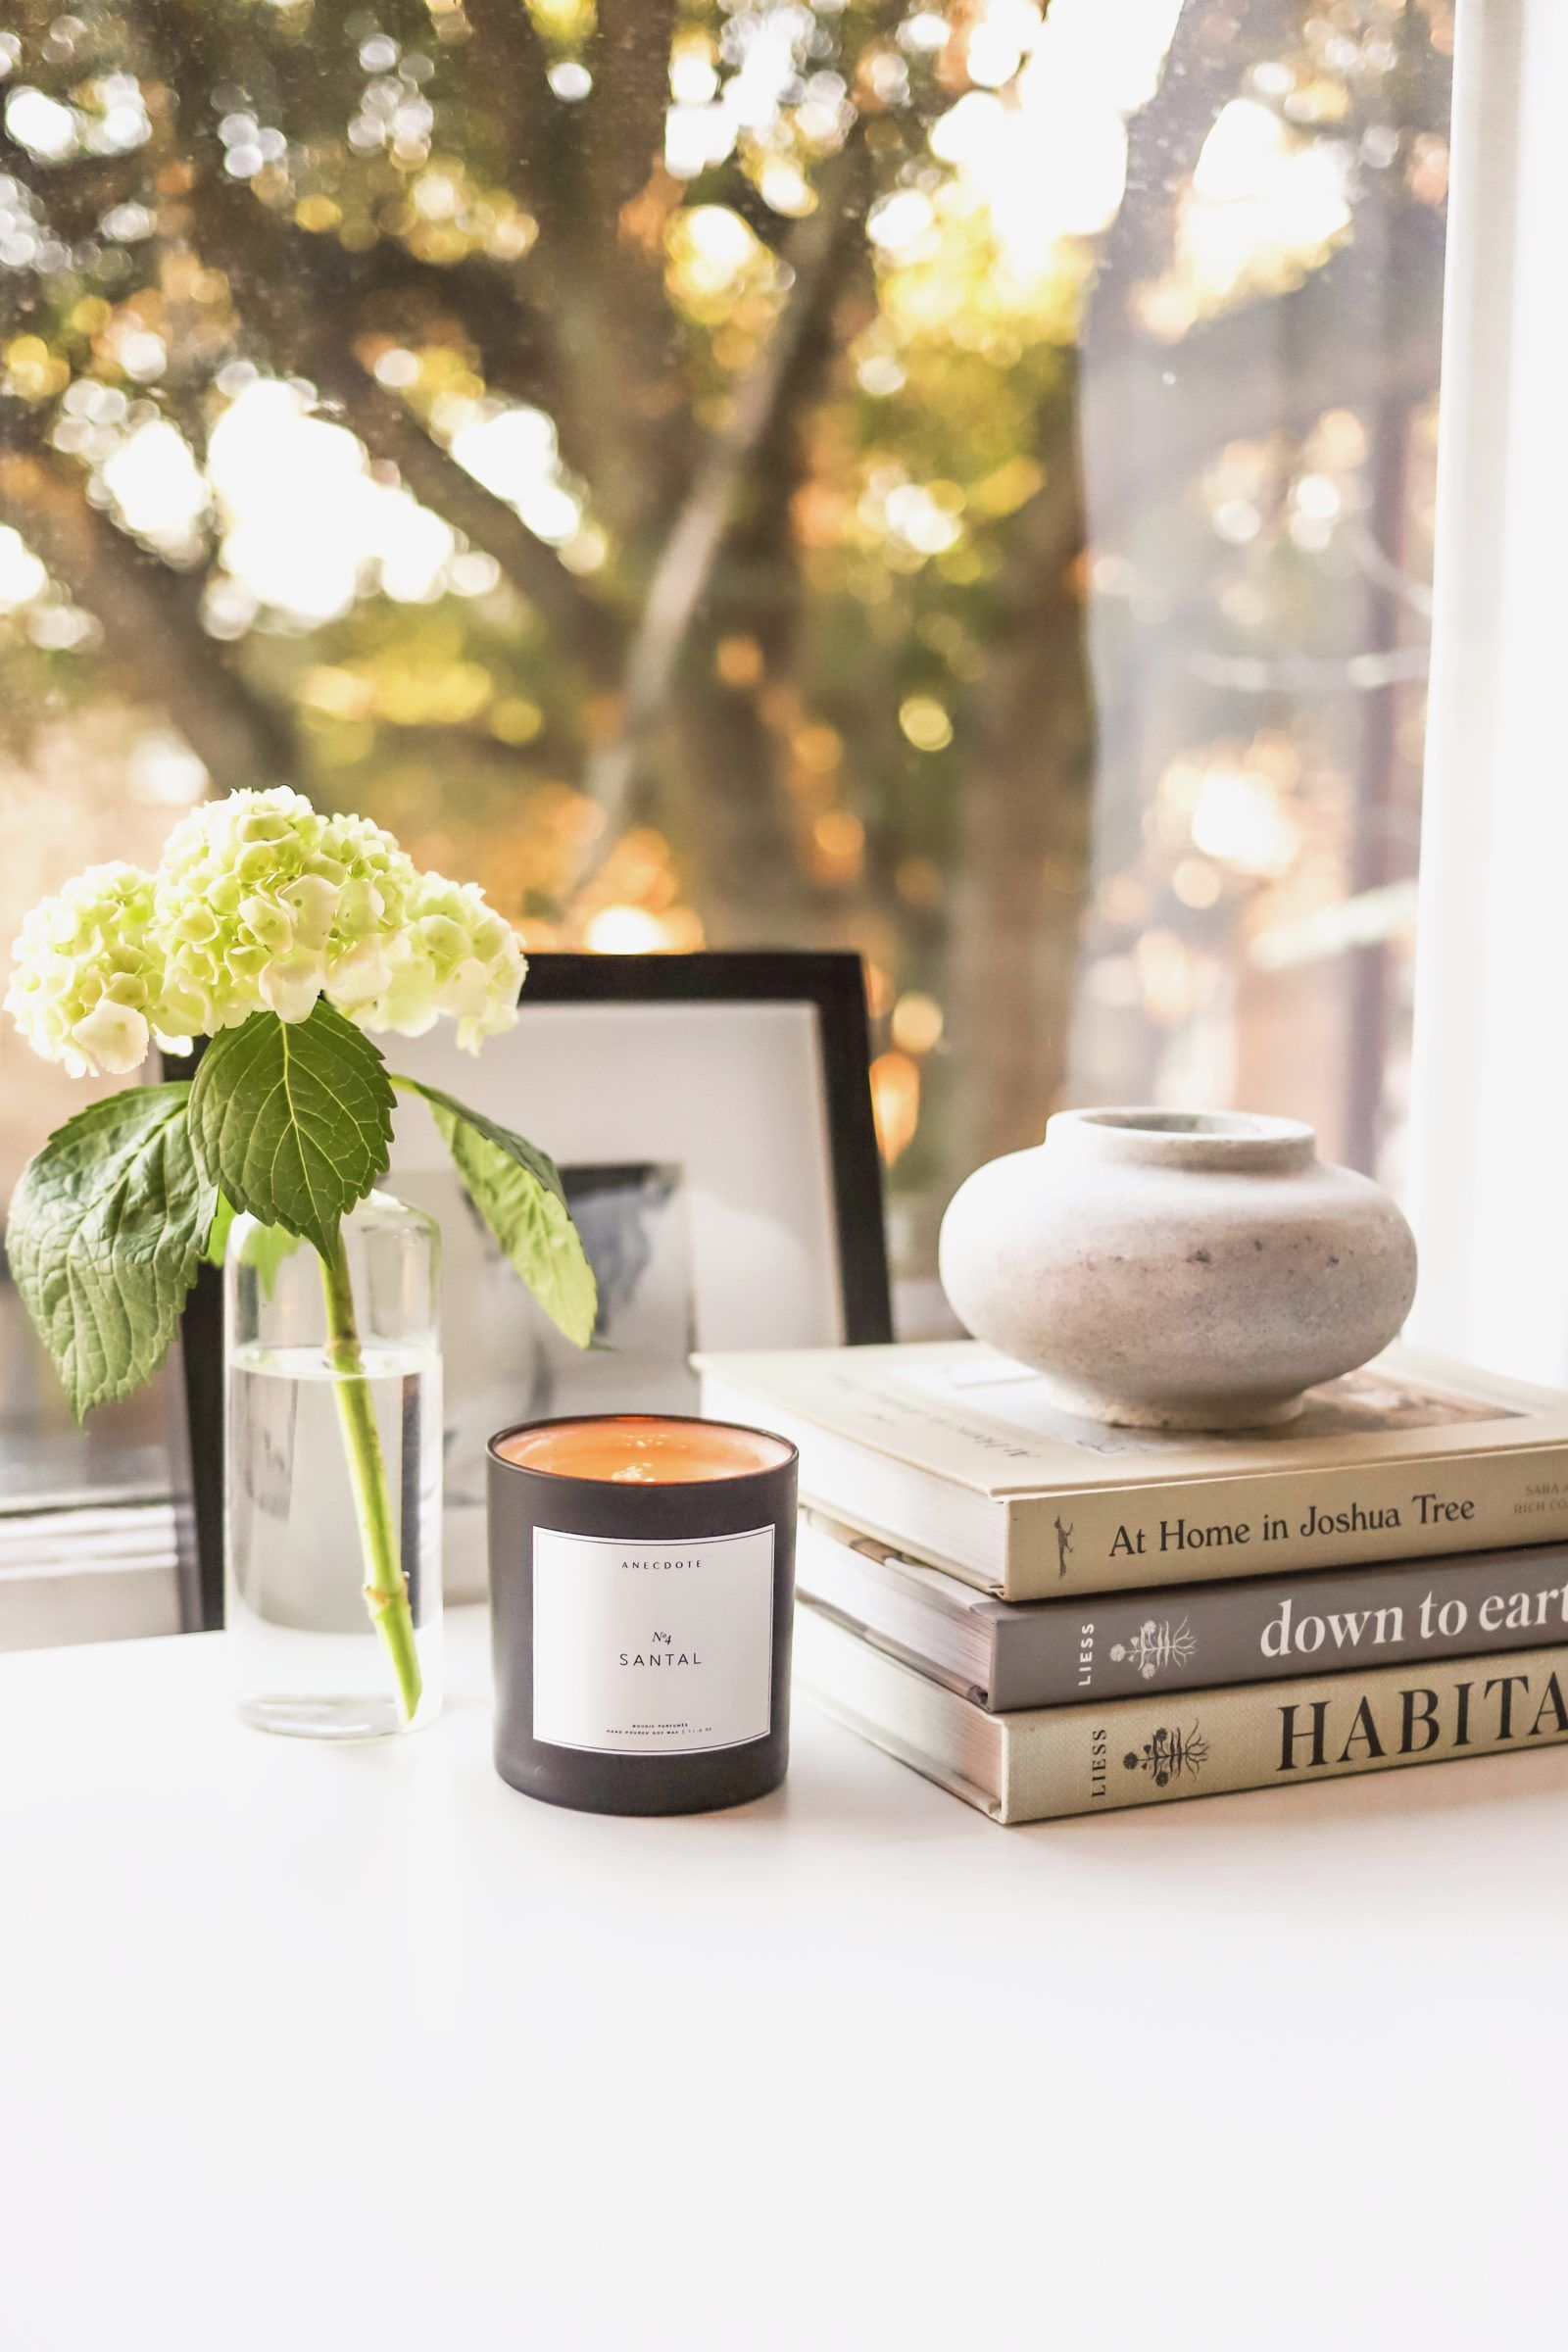 Crushing On Anecdote Harlowe James Candles Photography Candle Photoshoot Holiday Candles